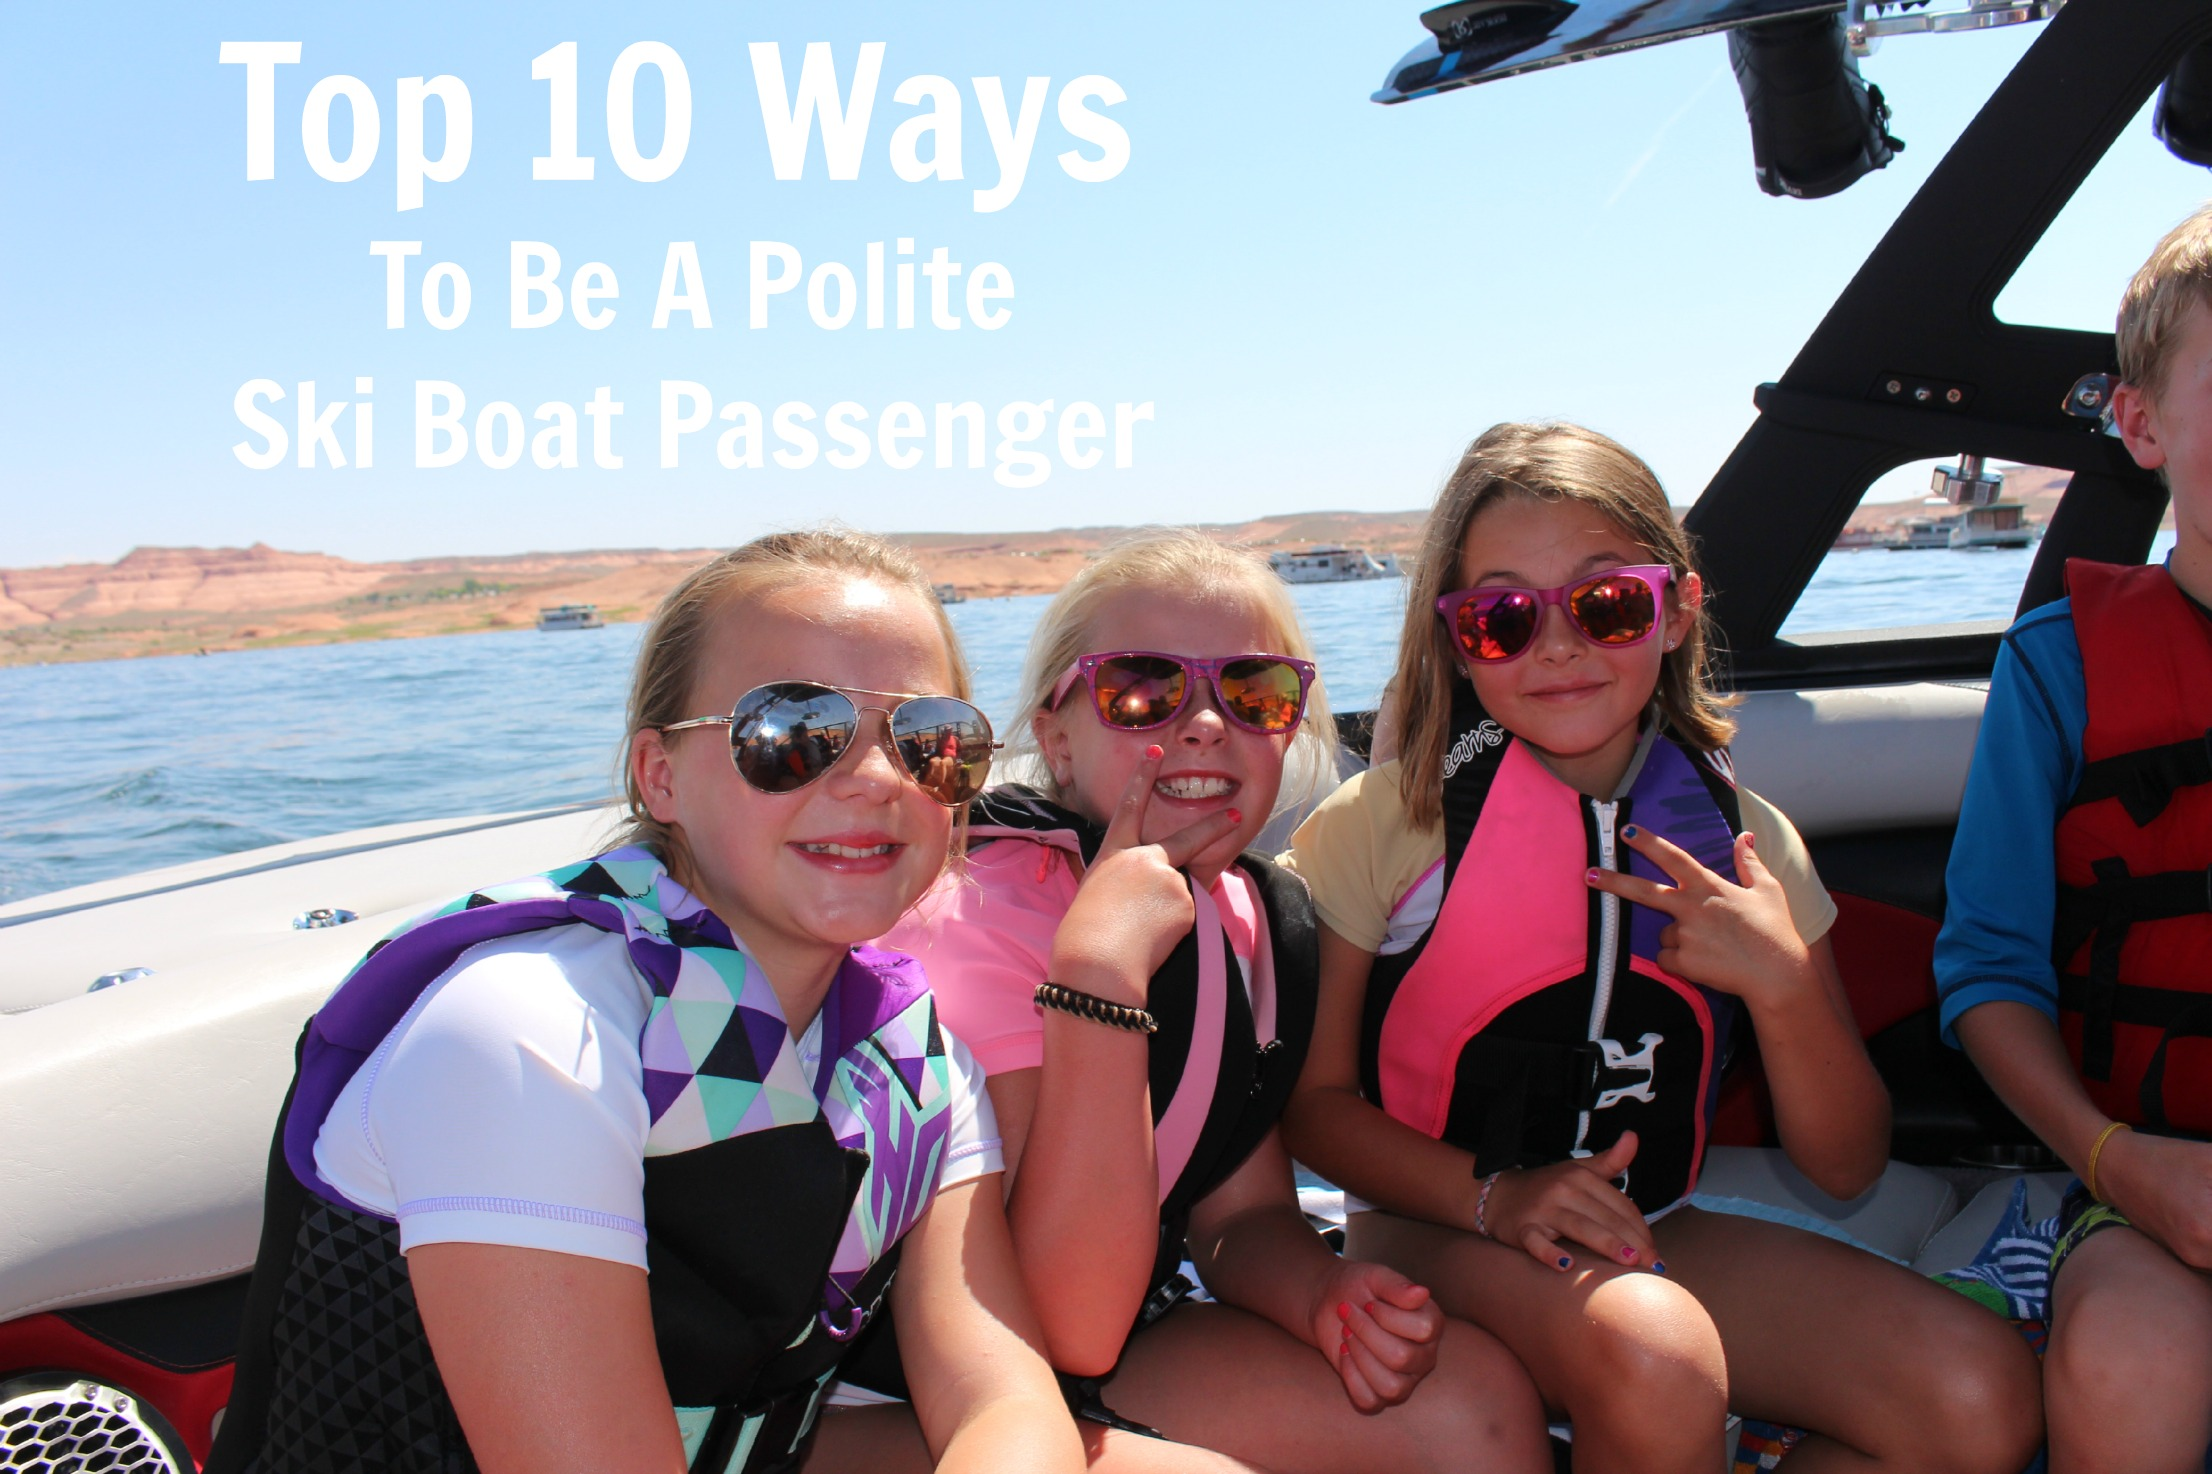 Top 10 Ways To Be A Polite Ski Boat Passenger